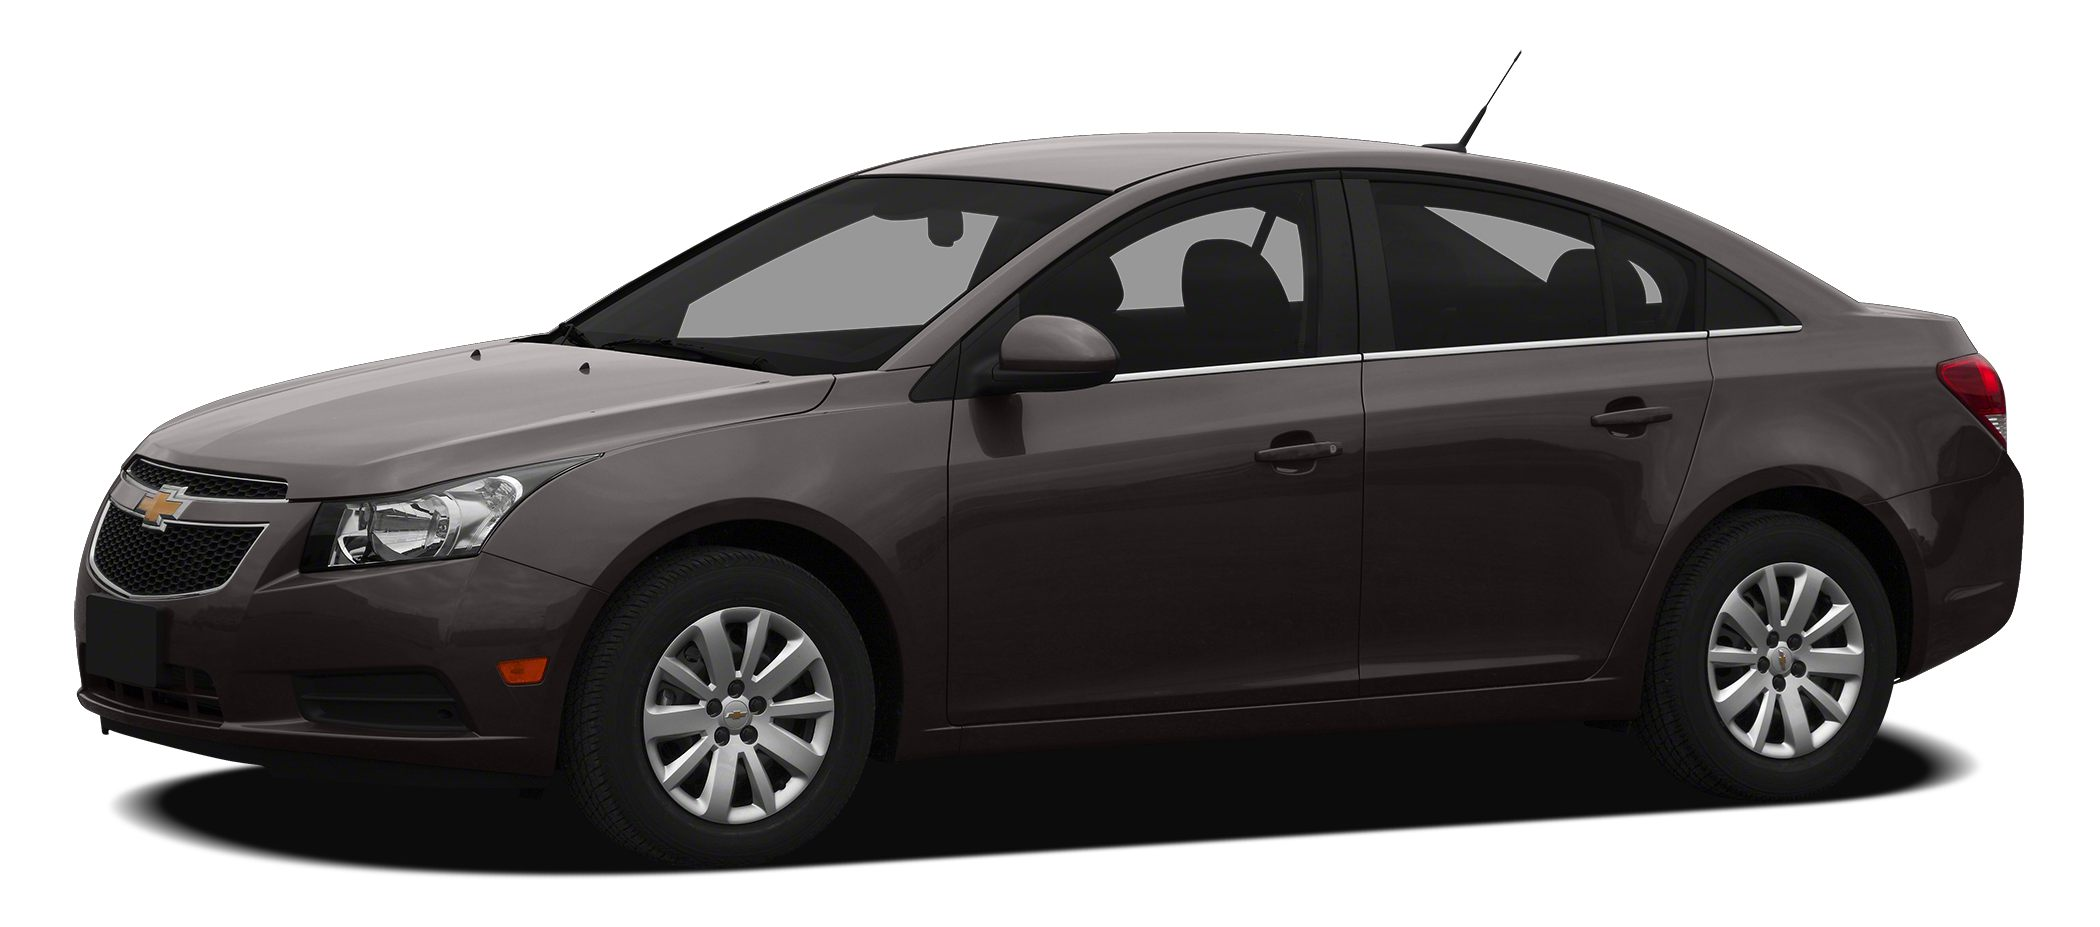 2011 Chevrolet Cruze LS Clean Carfax - Only 2 previous owners - GM Certified - Bluetooth Miles 3